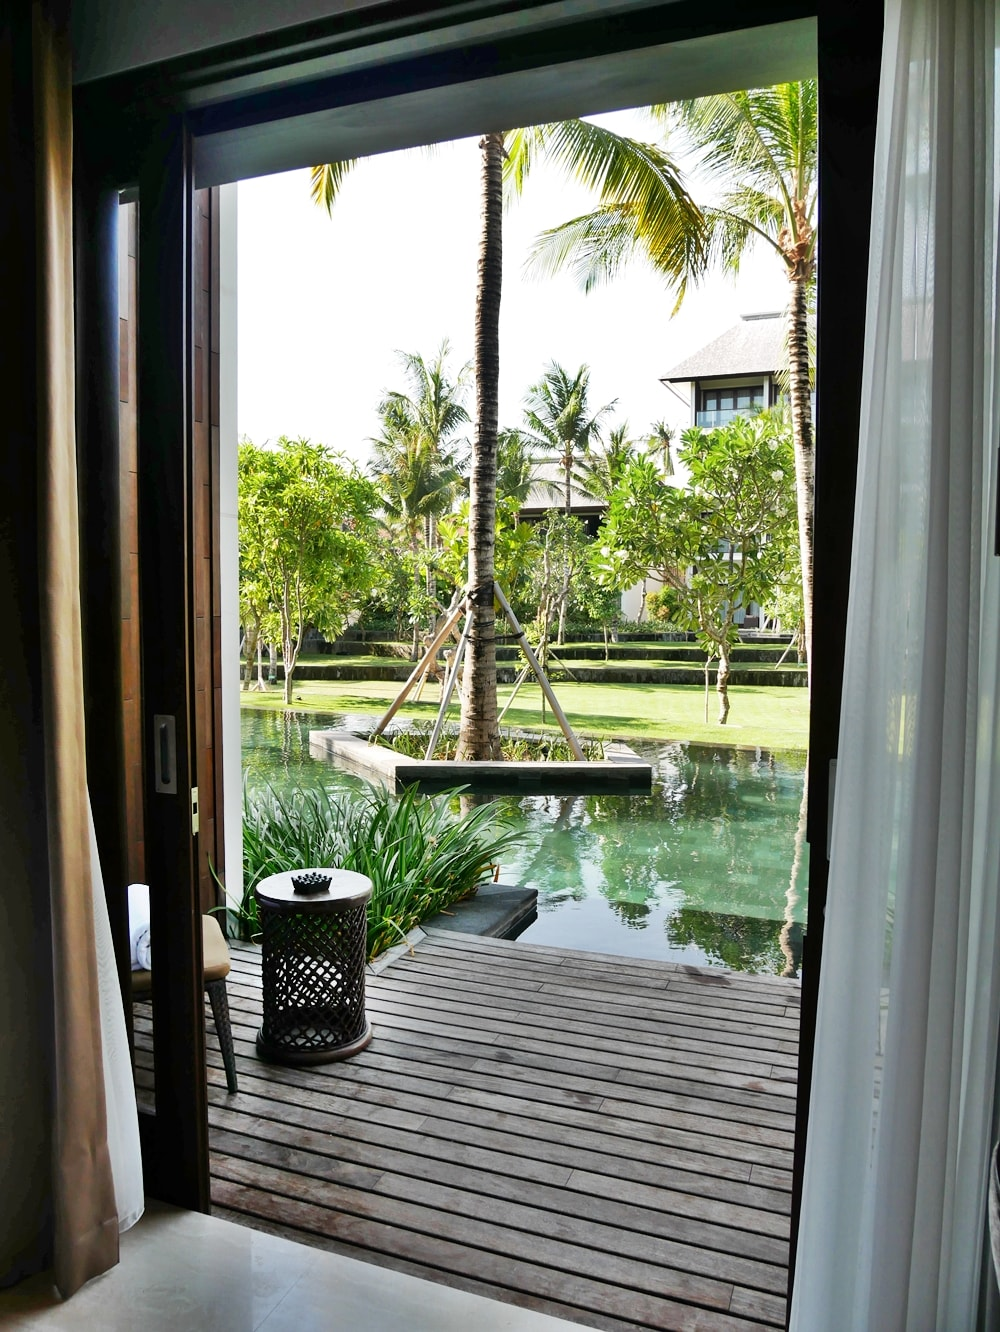 CHECK-IN AT THE ANVAYA BEACH RESORT KUTA - PREMIER LAGOON ACCESS